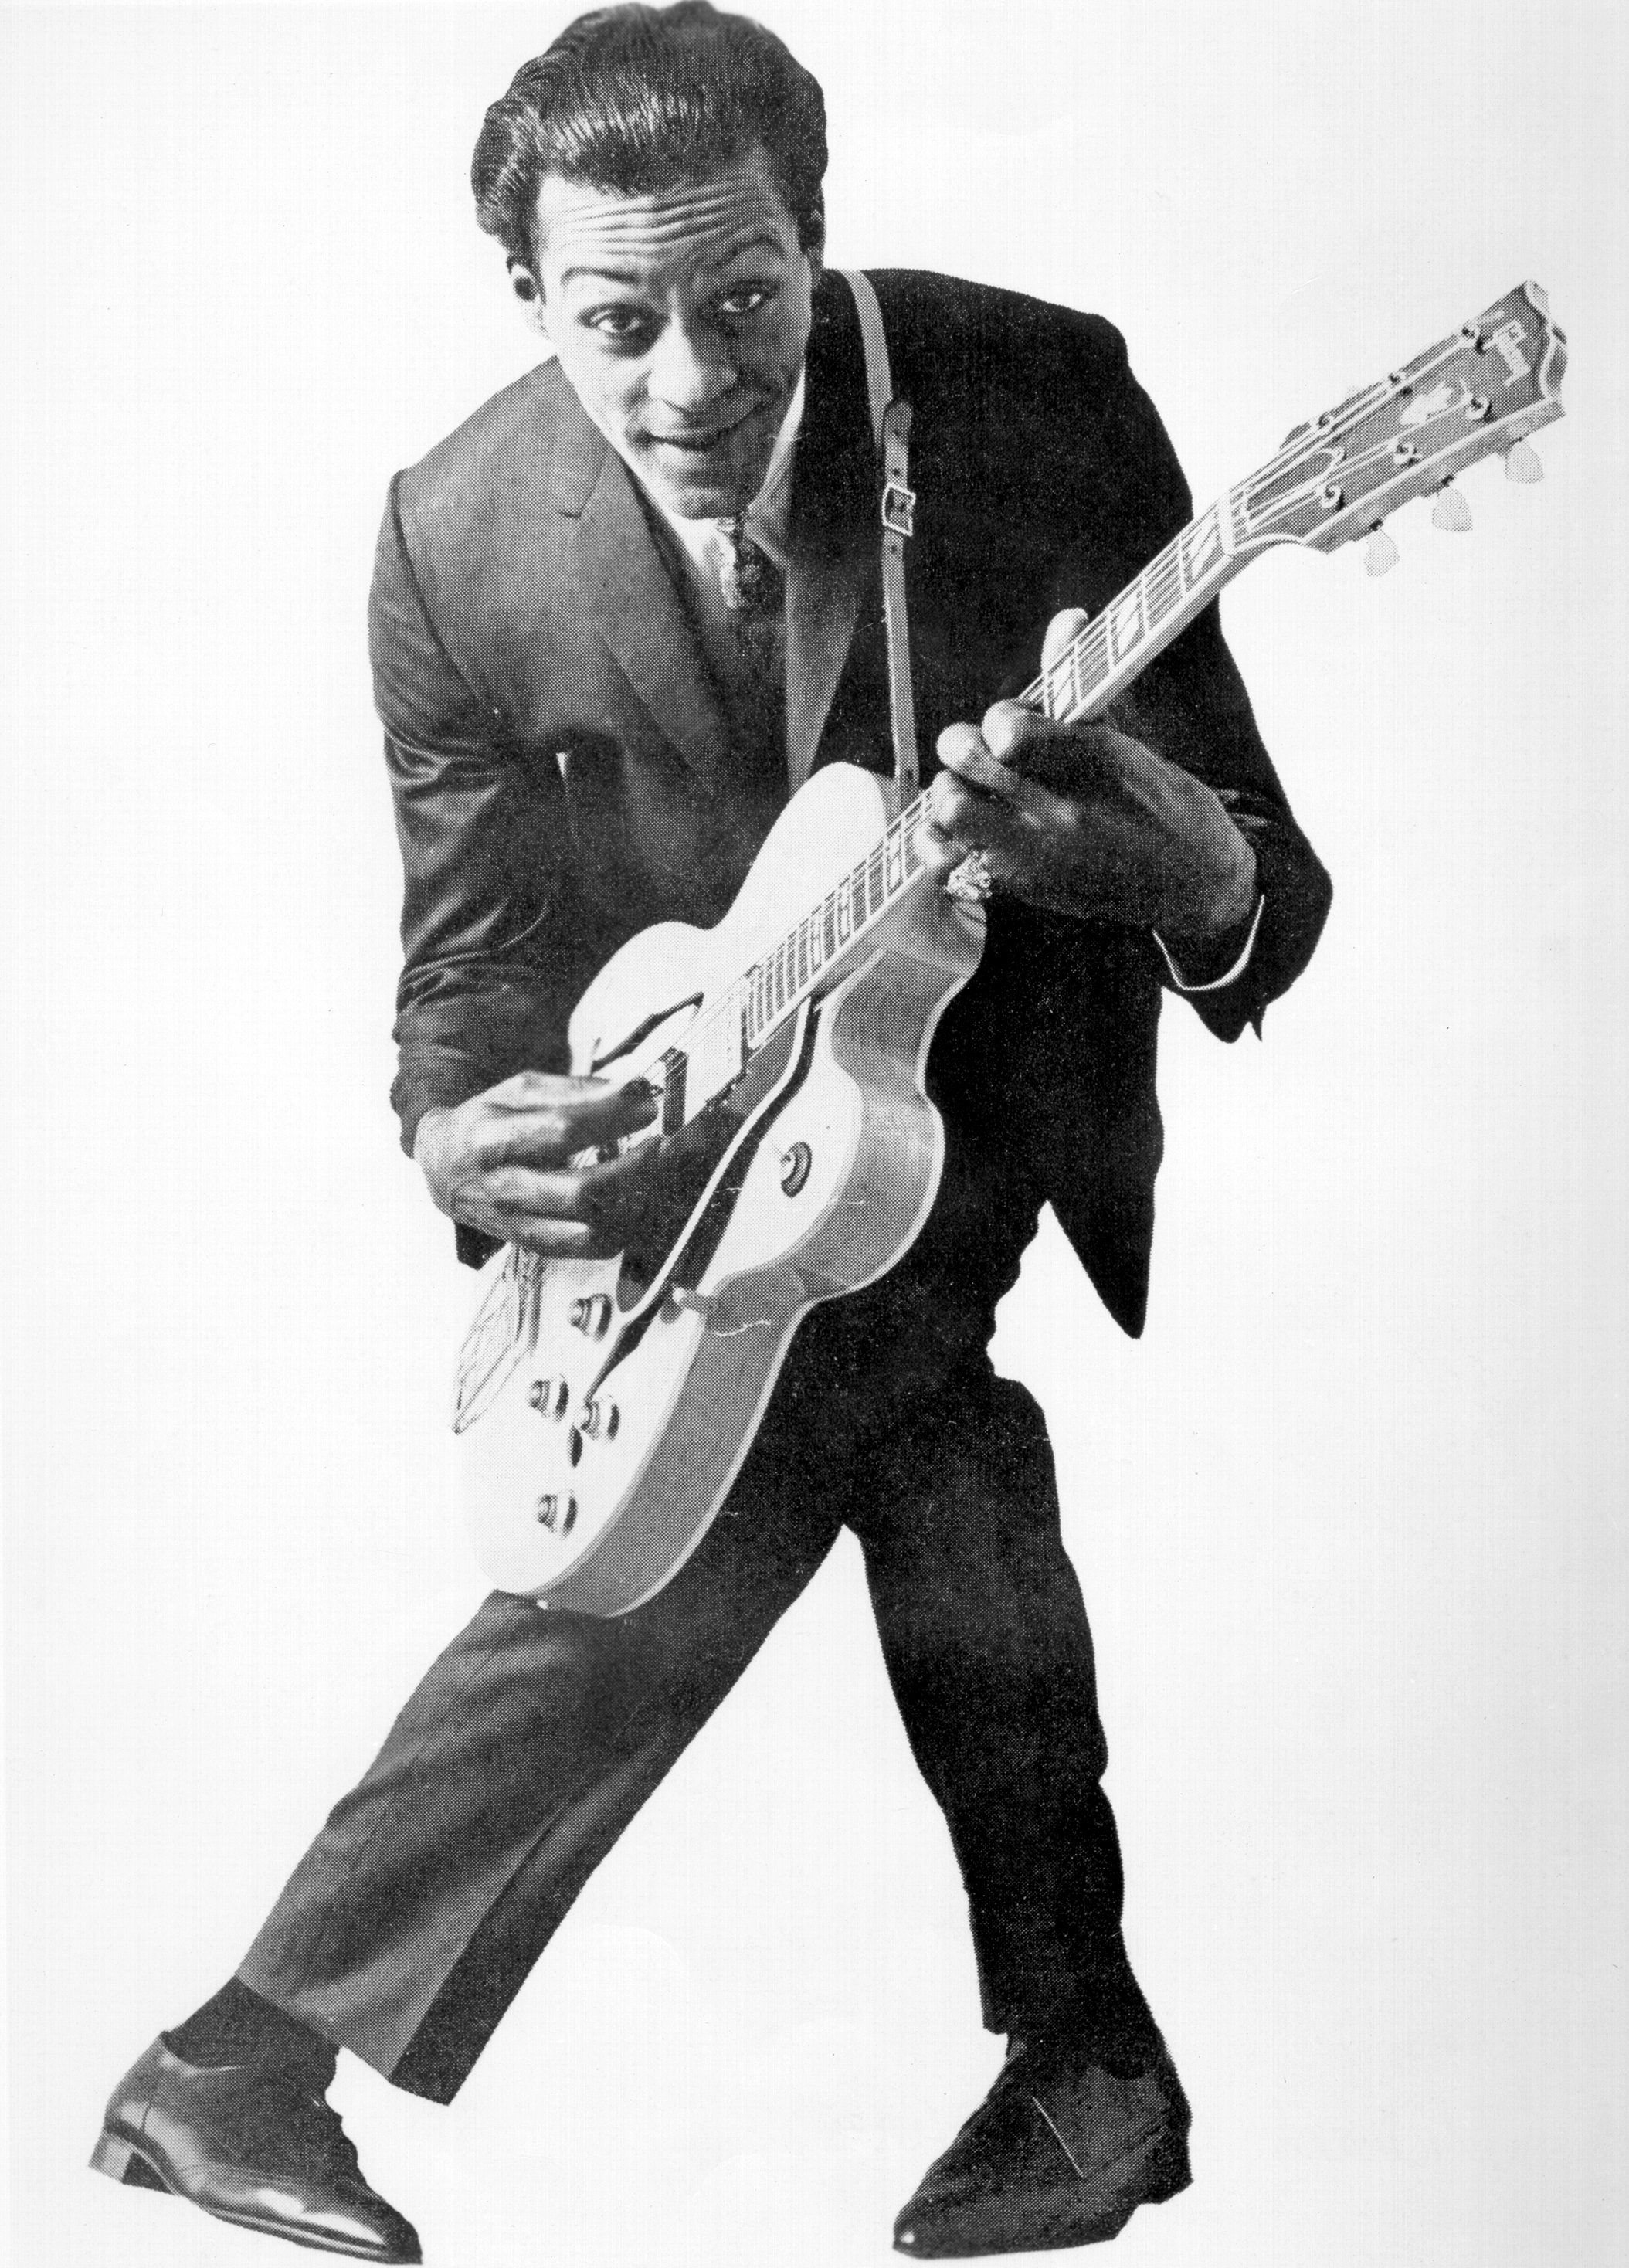 Chuck Berry The father of rock-'n'-roll guitar, his staccato influence is still heard on most songs today.